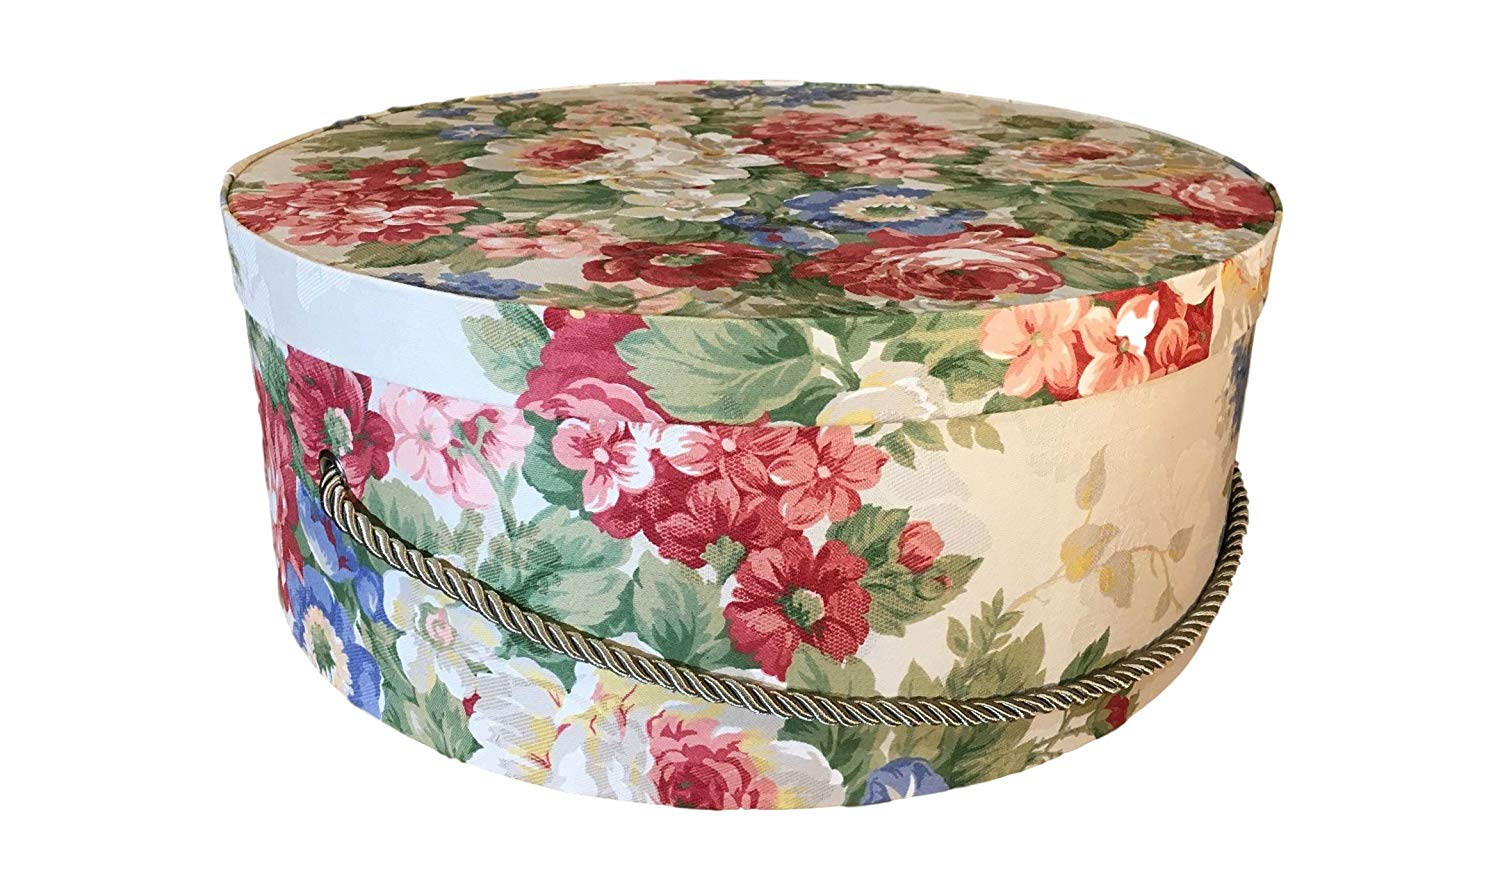 Cheap Unfinished Hat Boxes Find Unfinished Hat Boxes Deals